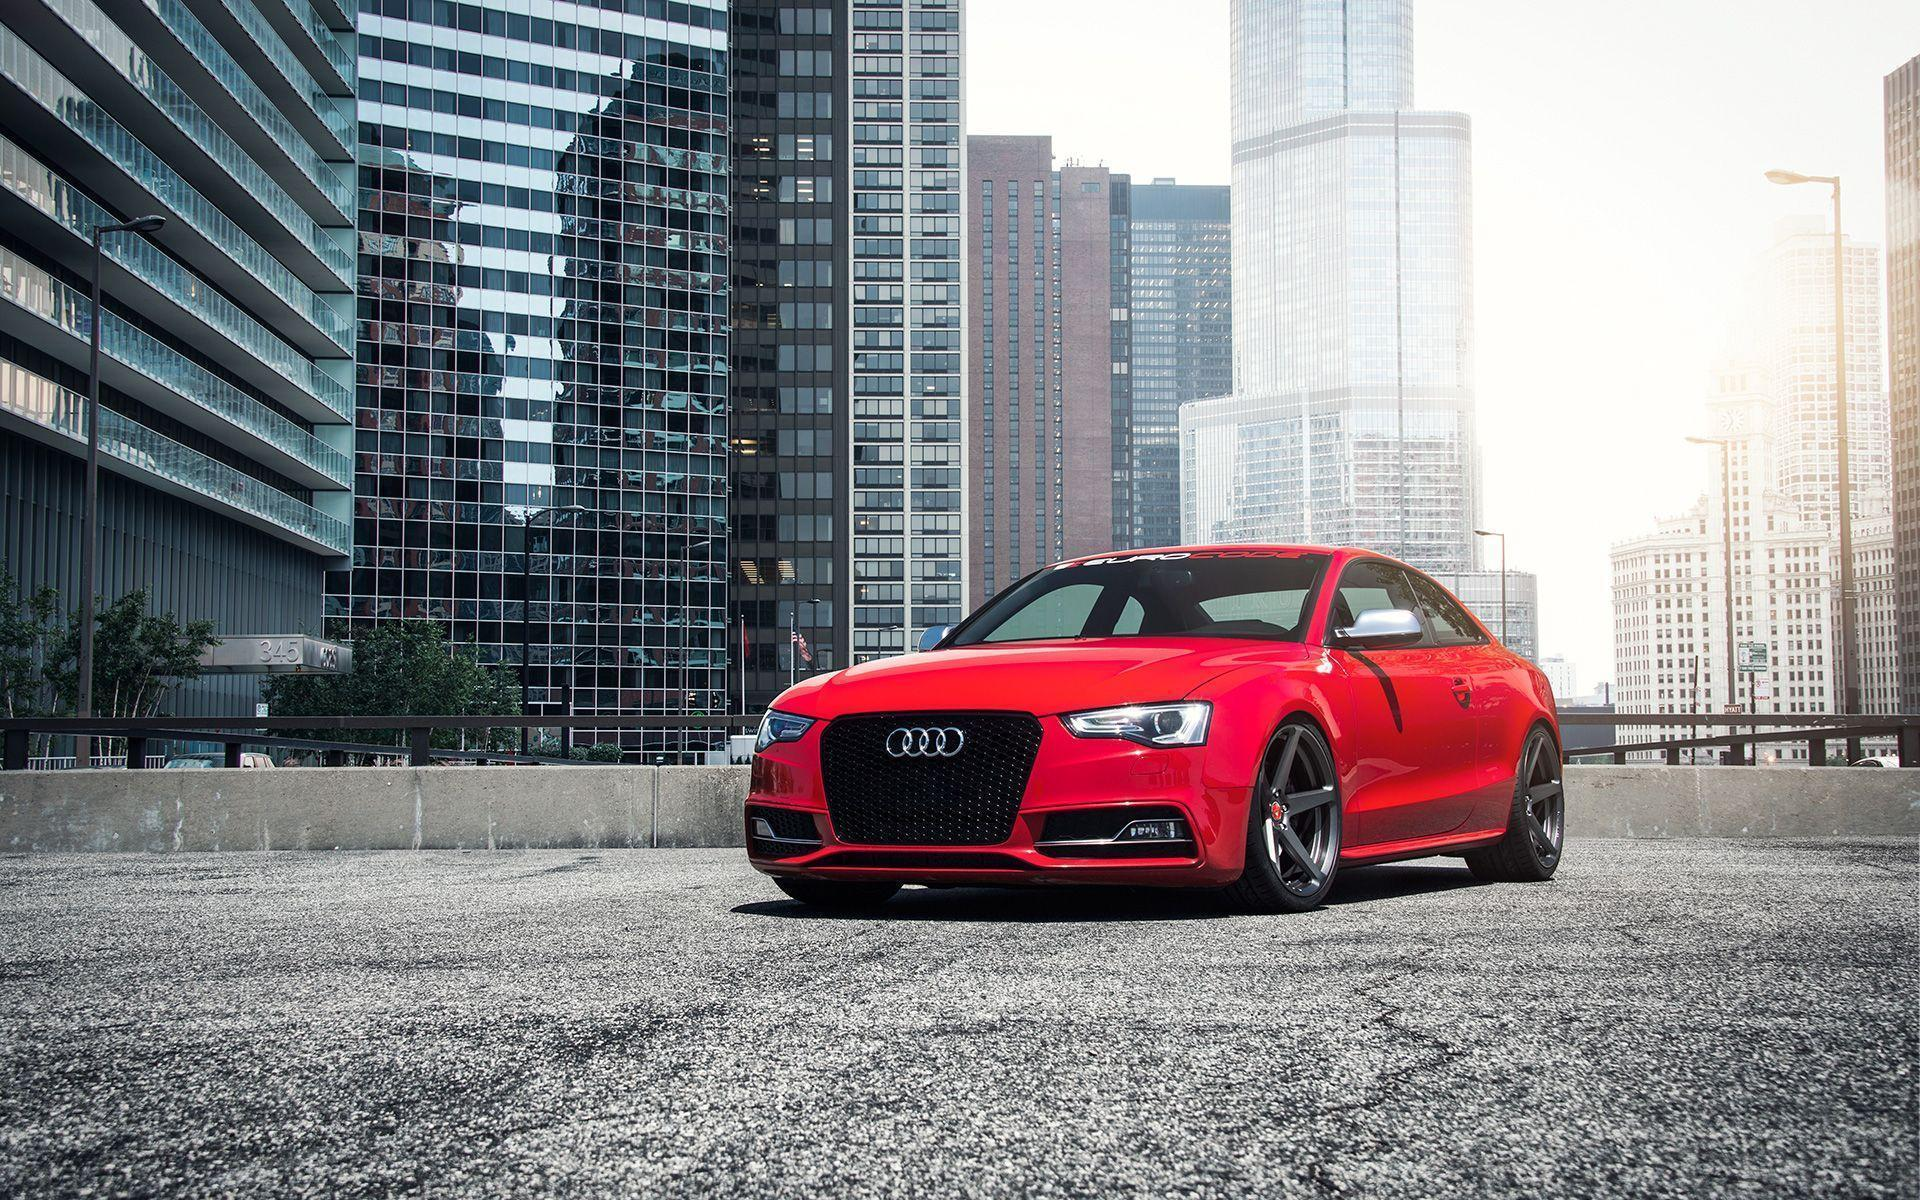 Eurocode Tuning Audi Wallpaper | HD Car Wallpapers